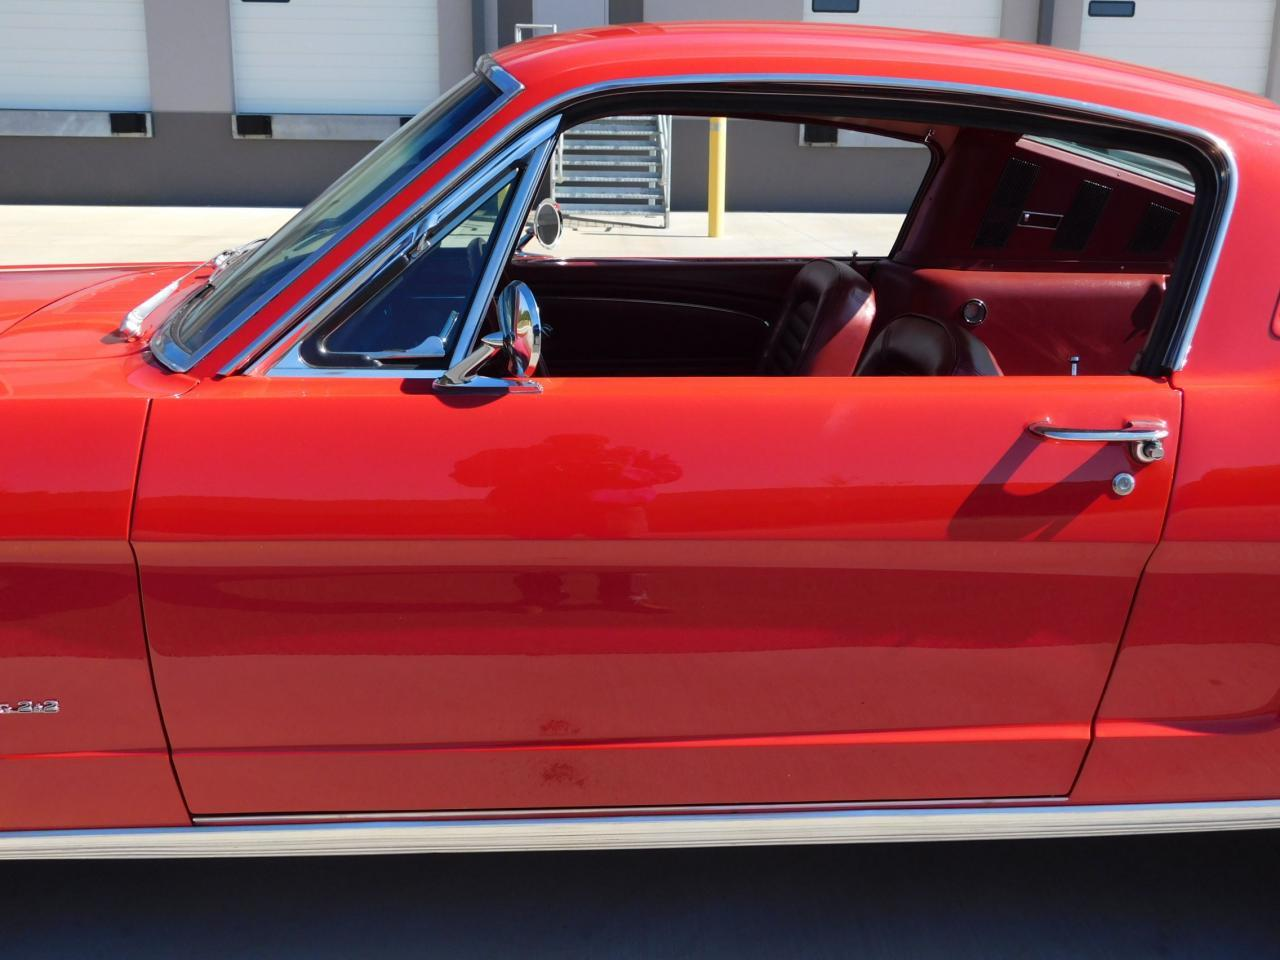 Large Picture of '66 Mustang located in Georgia - $46,995.00 Offered by Gateway Classic Cars - Atlanta - M8OT